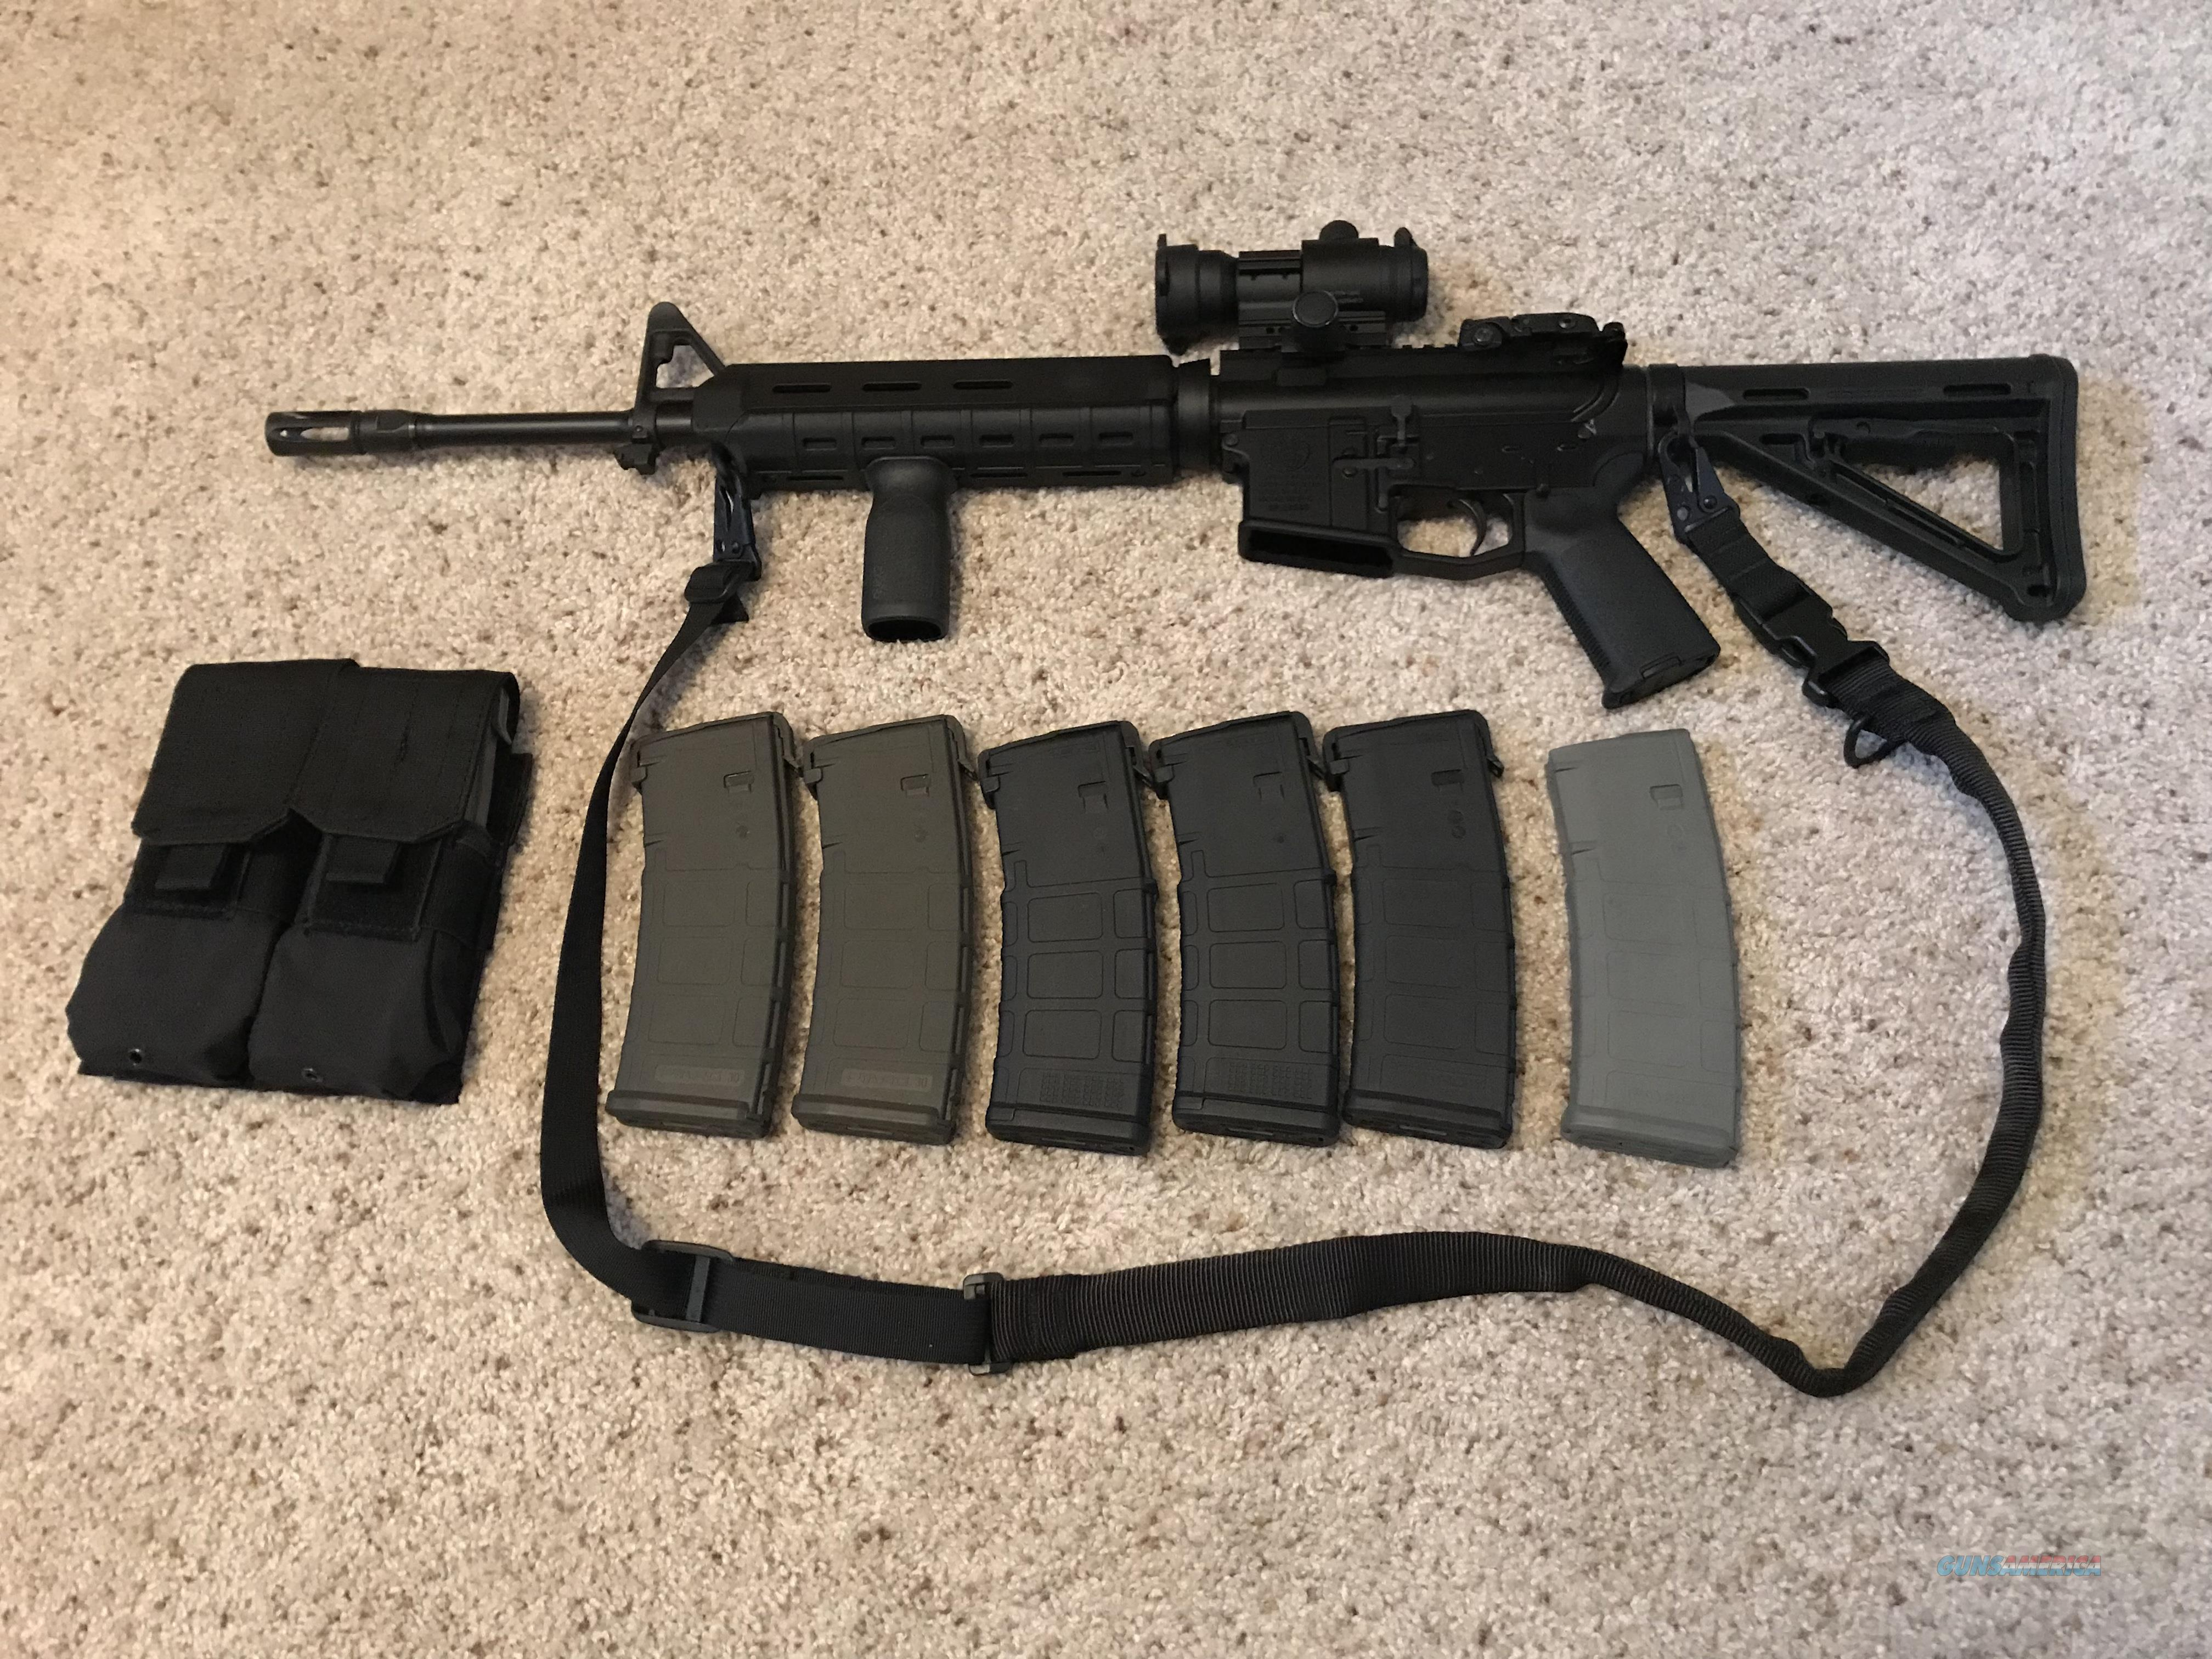 Smith & Wesson M&P MOE 5.56 with sling, Aimpoint PRO + 8 Pmags  Guns > Rifles > Smith & Wesson Rifles > M&P